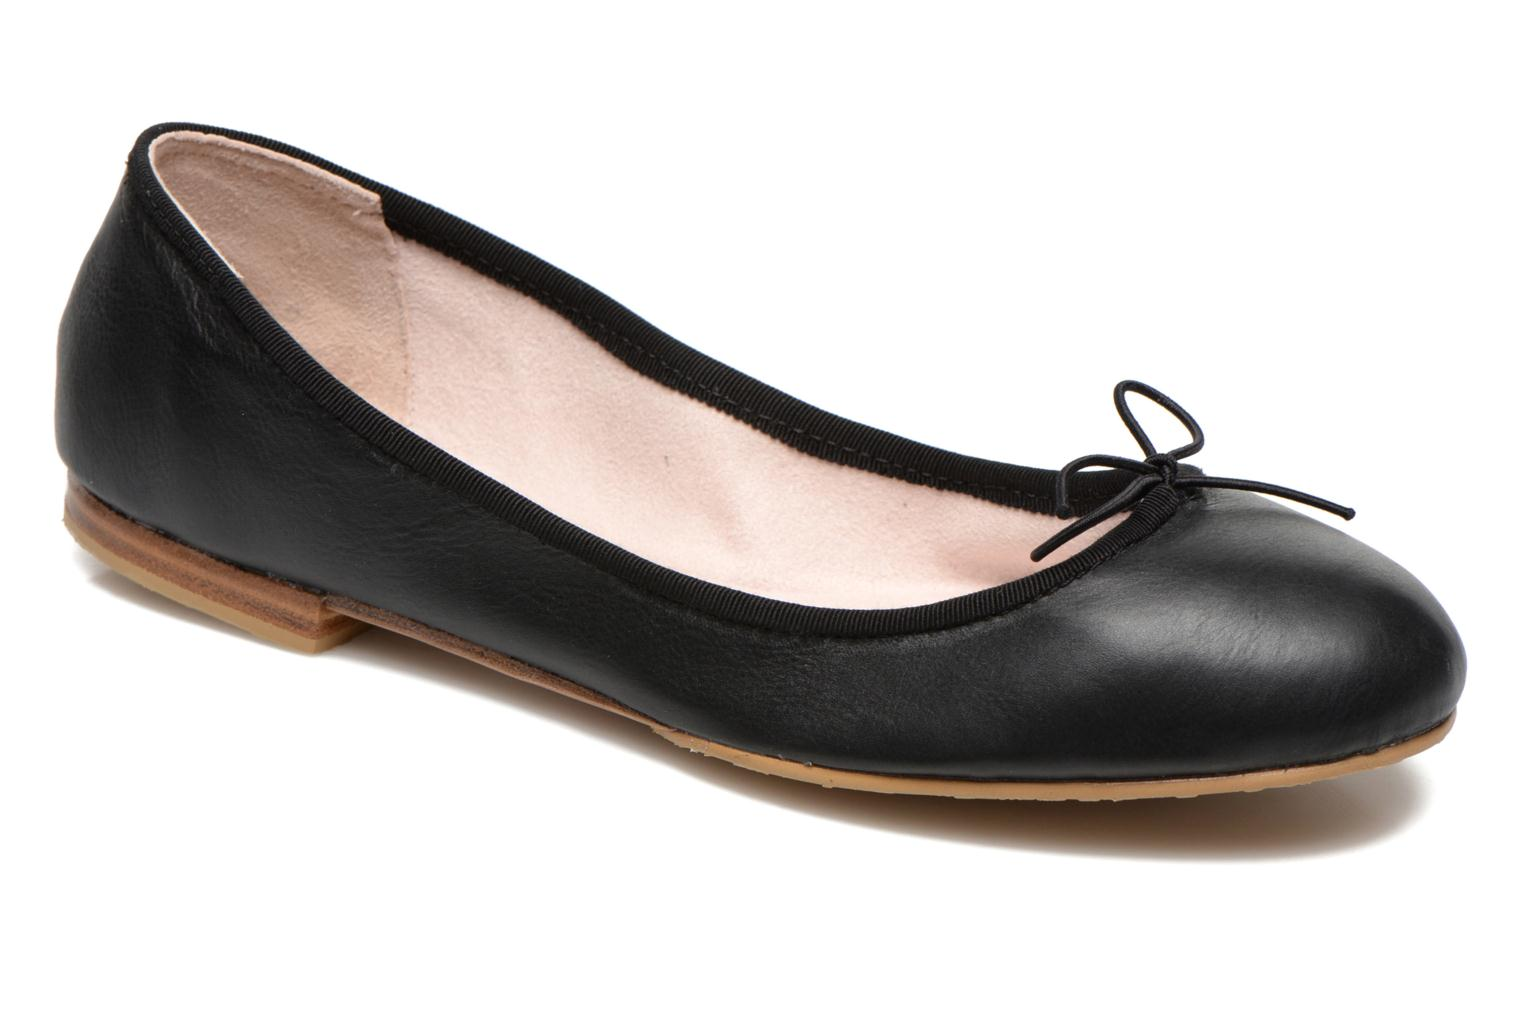 ALAIR BALLERINA Black